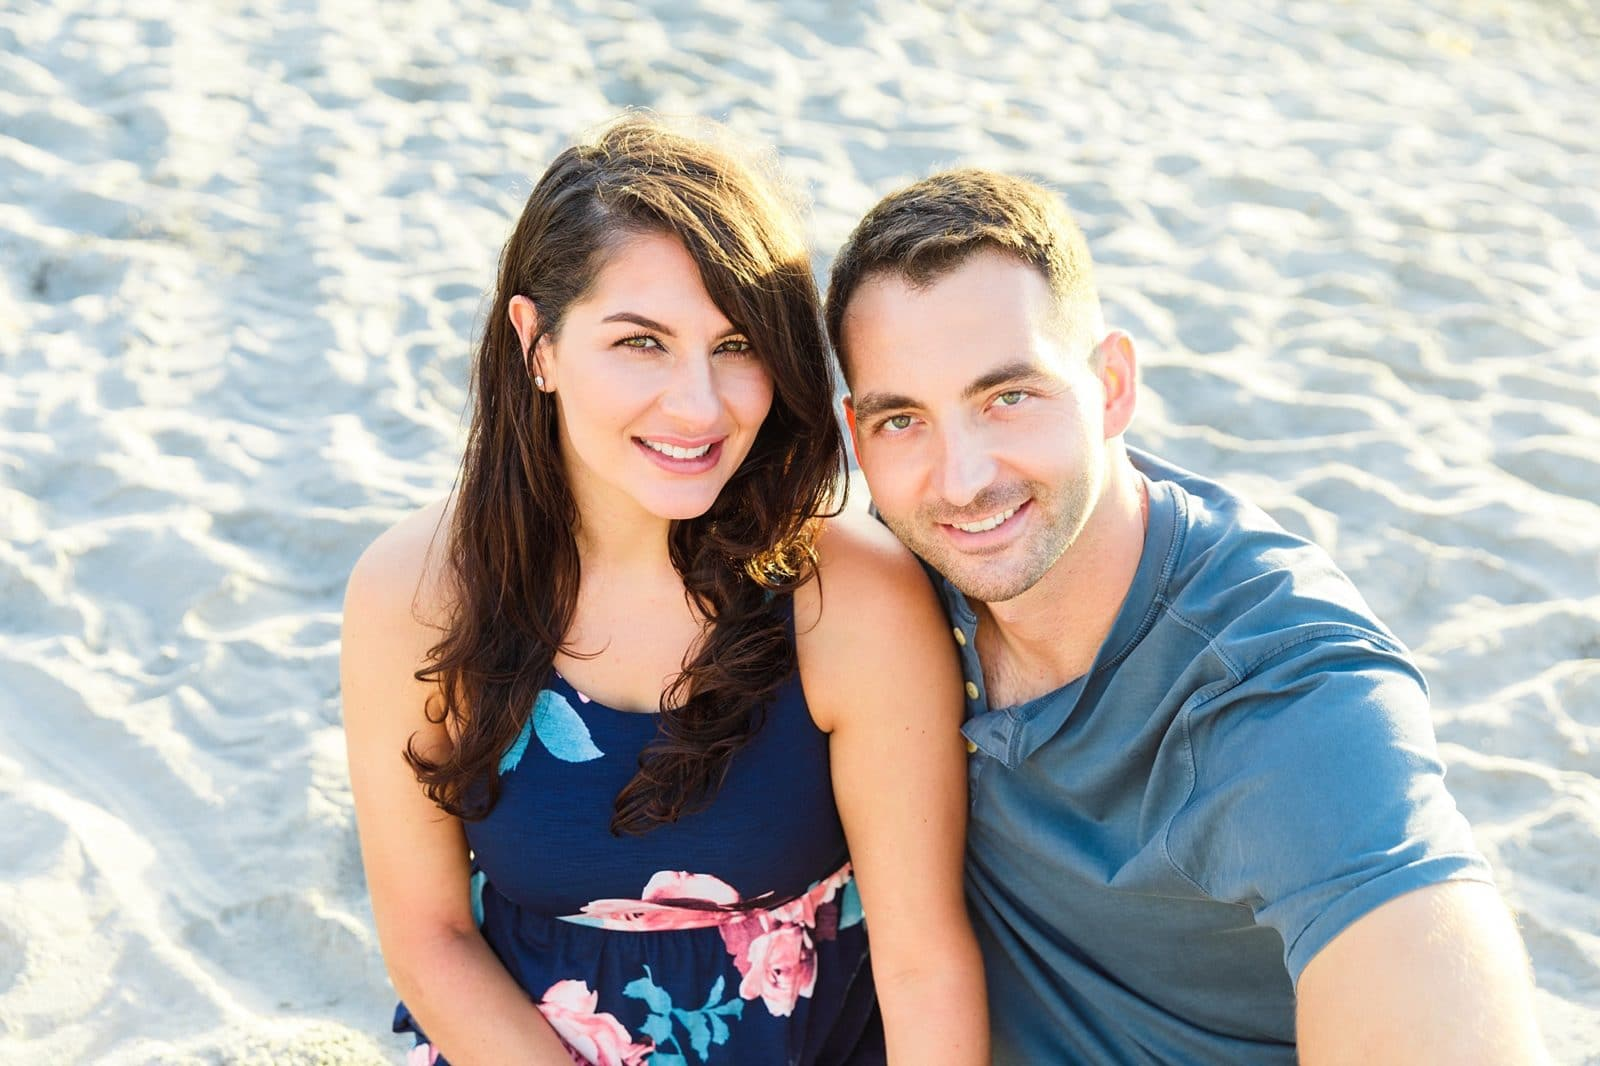 San Diego Photographers | San Diego Engagement Photography